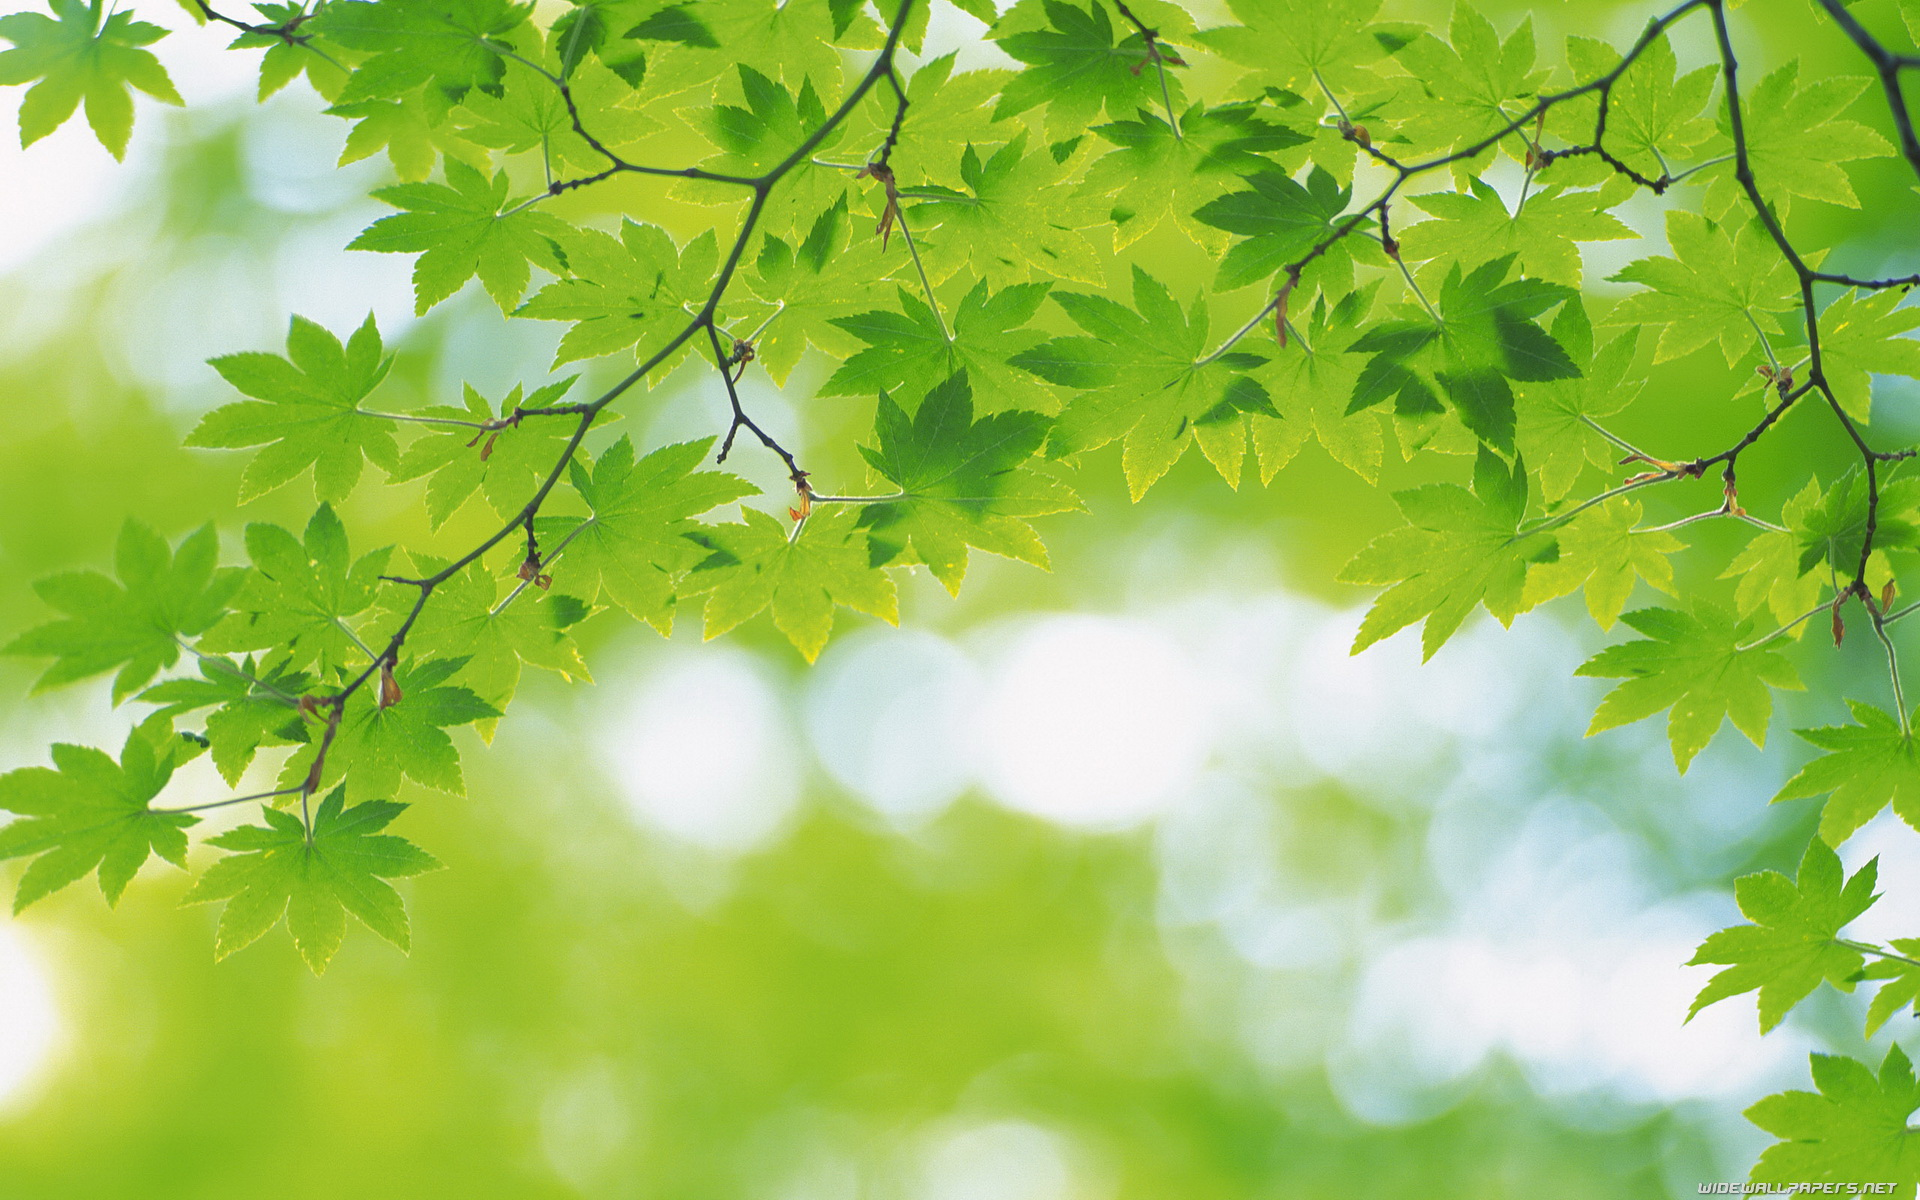 free download 44 hd green wallpapers for windows and mac systems free download 44 hd green wallpapers